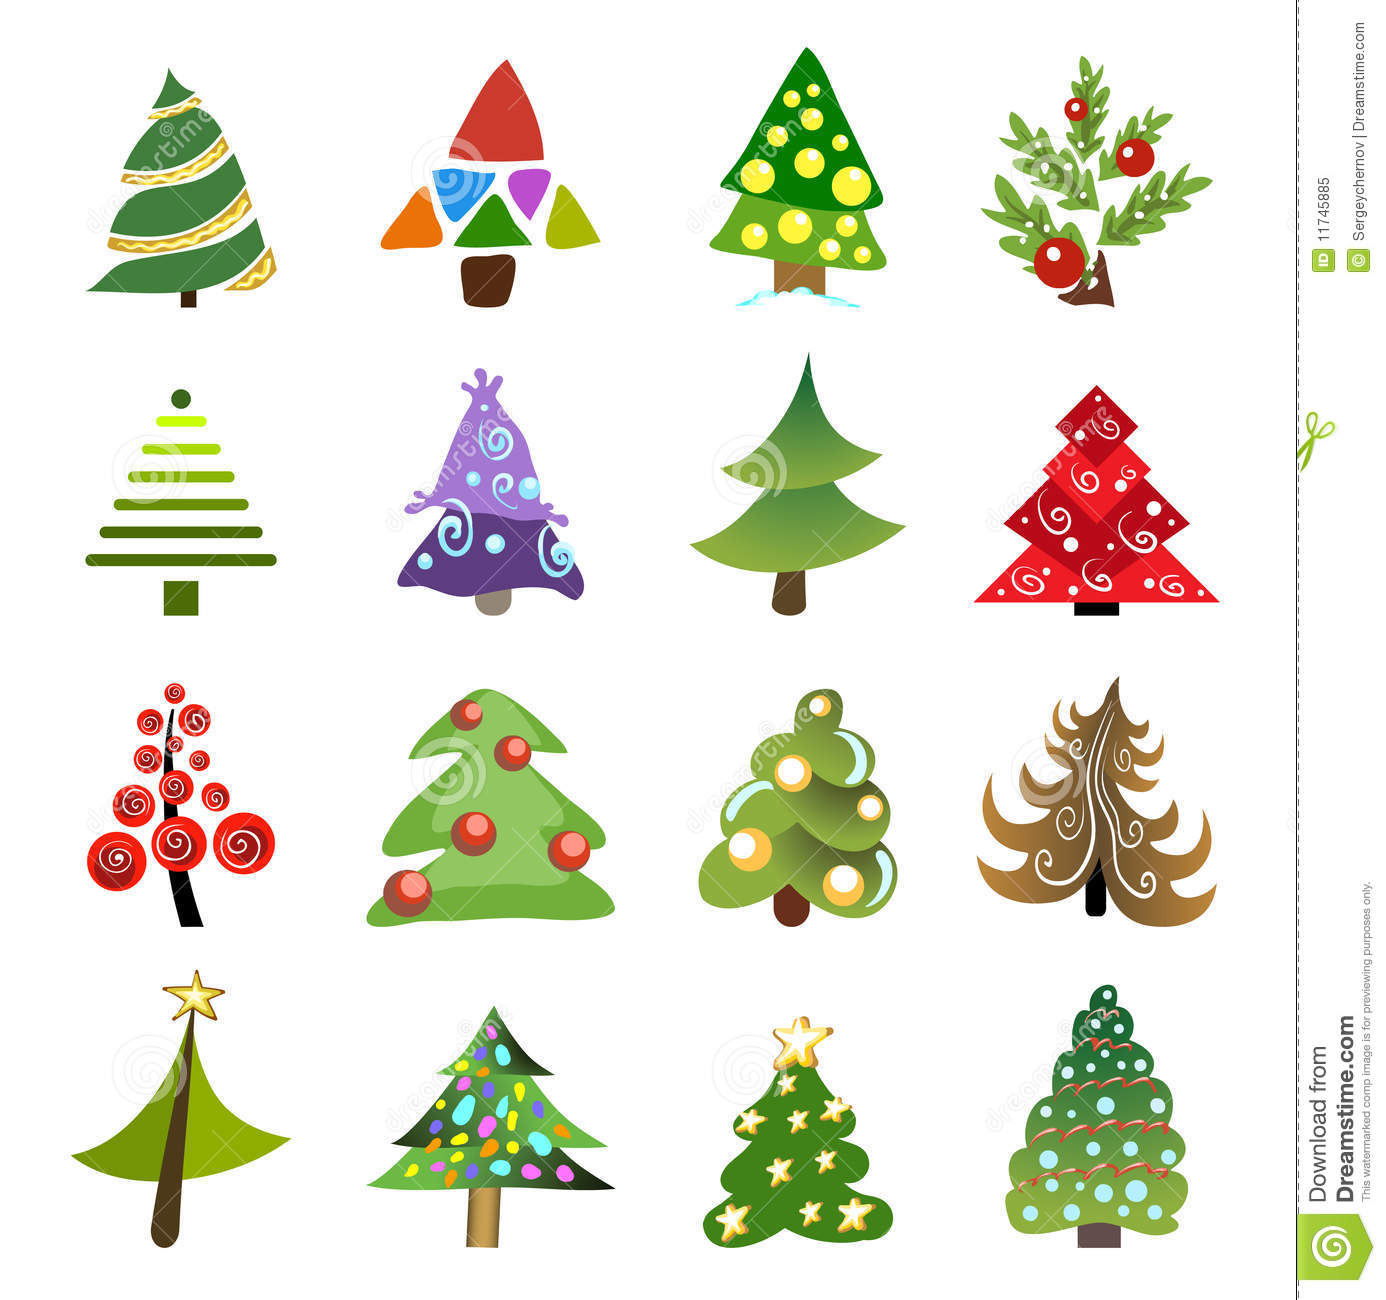 Christmas Tree Collection Gravesend : Christmas tree collection royalty free stock photo image